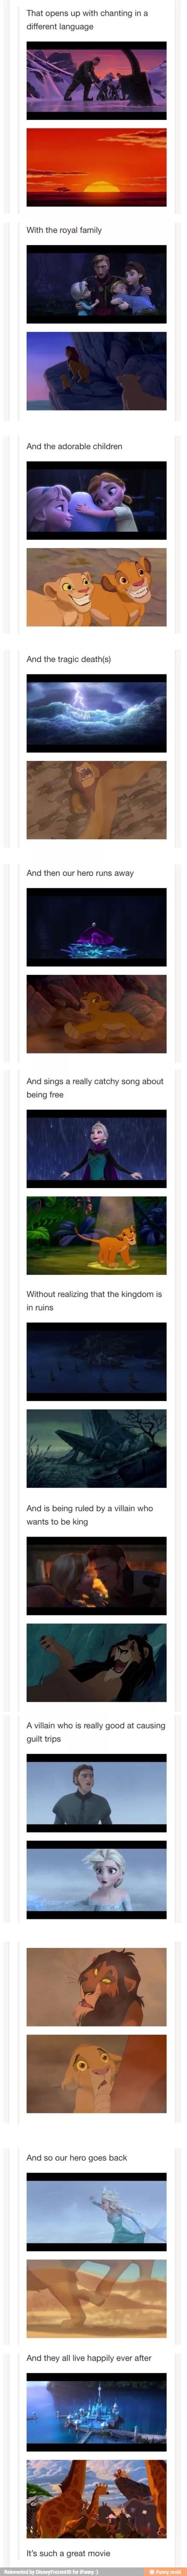 Um...Wow....never would have thought about Lion King and Frozen being the same movie... (Although when I first saw Frozen I did think they were singing the opening song of Lion King at first)